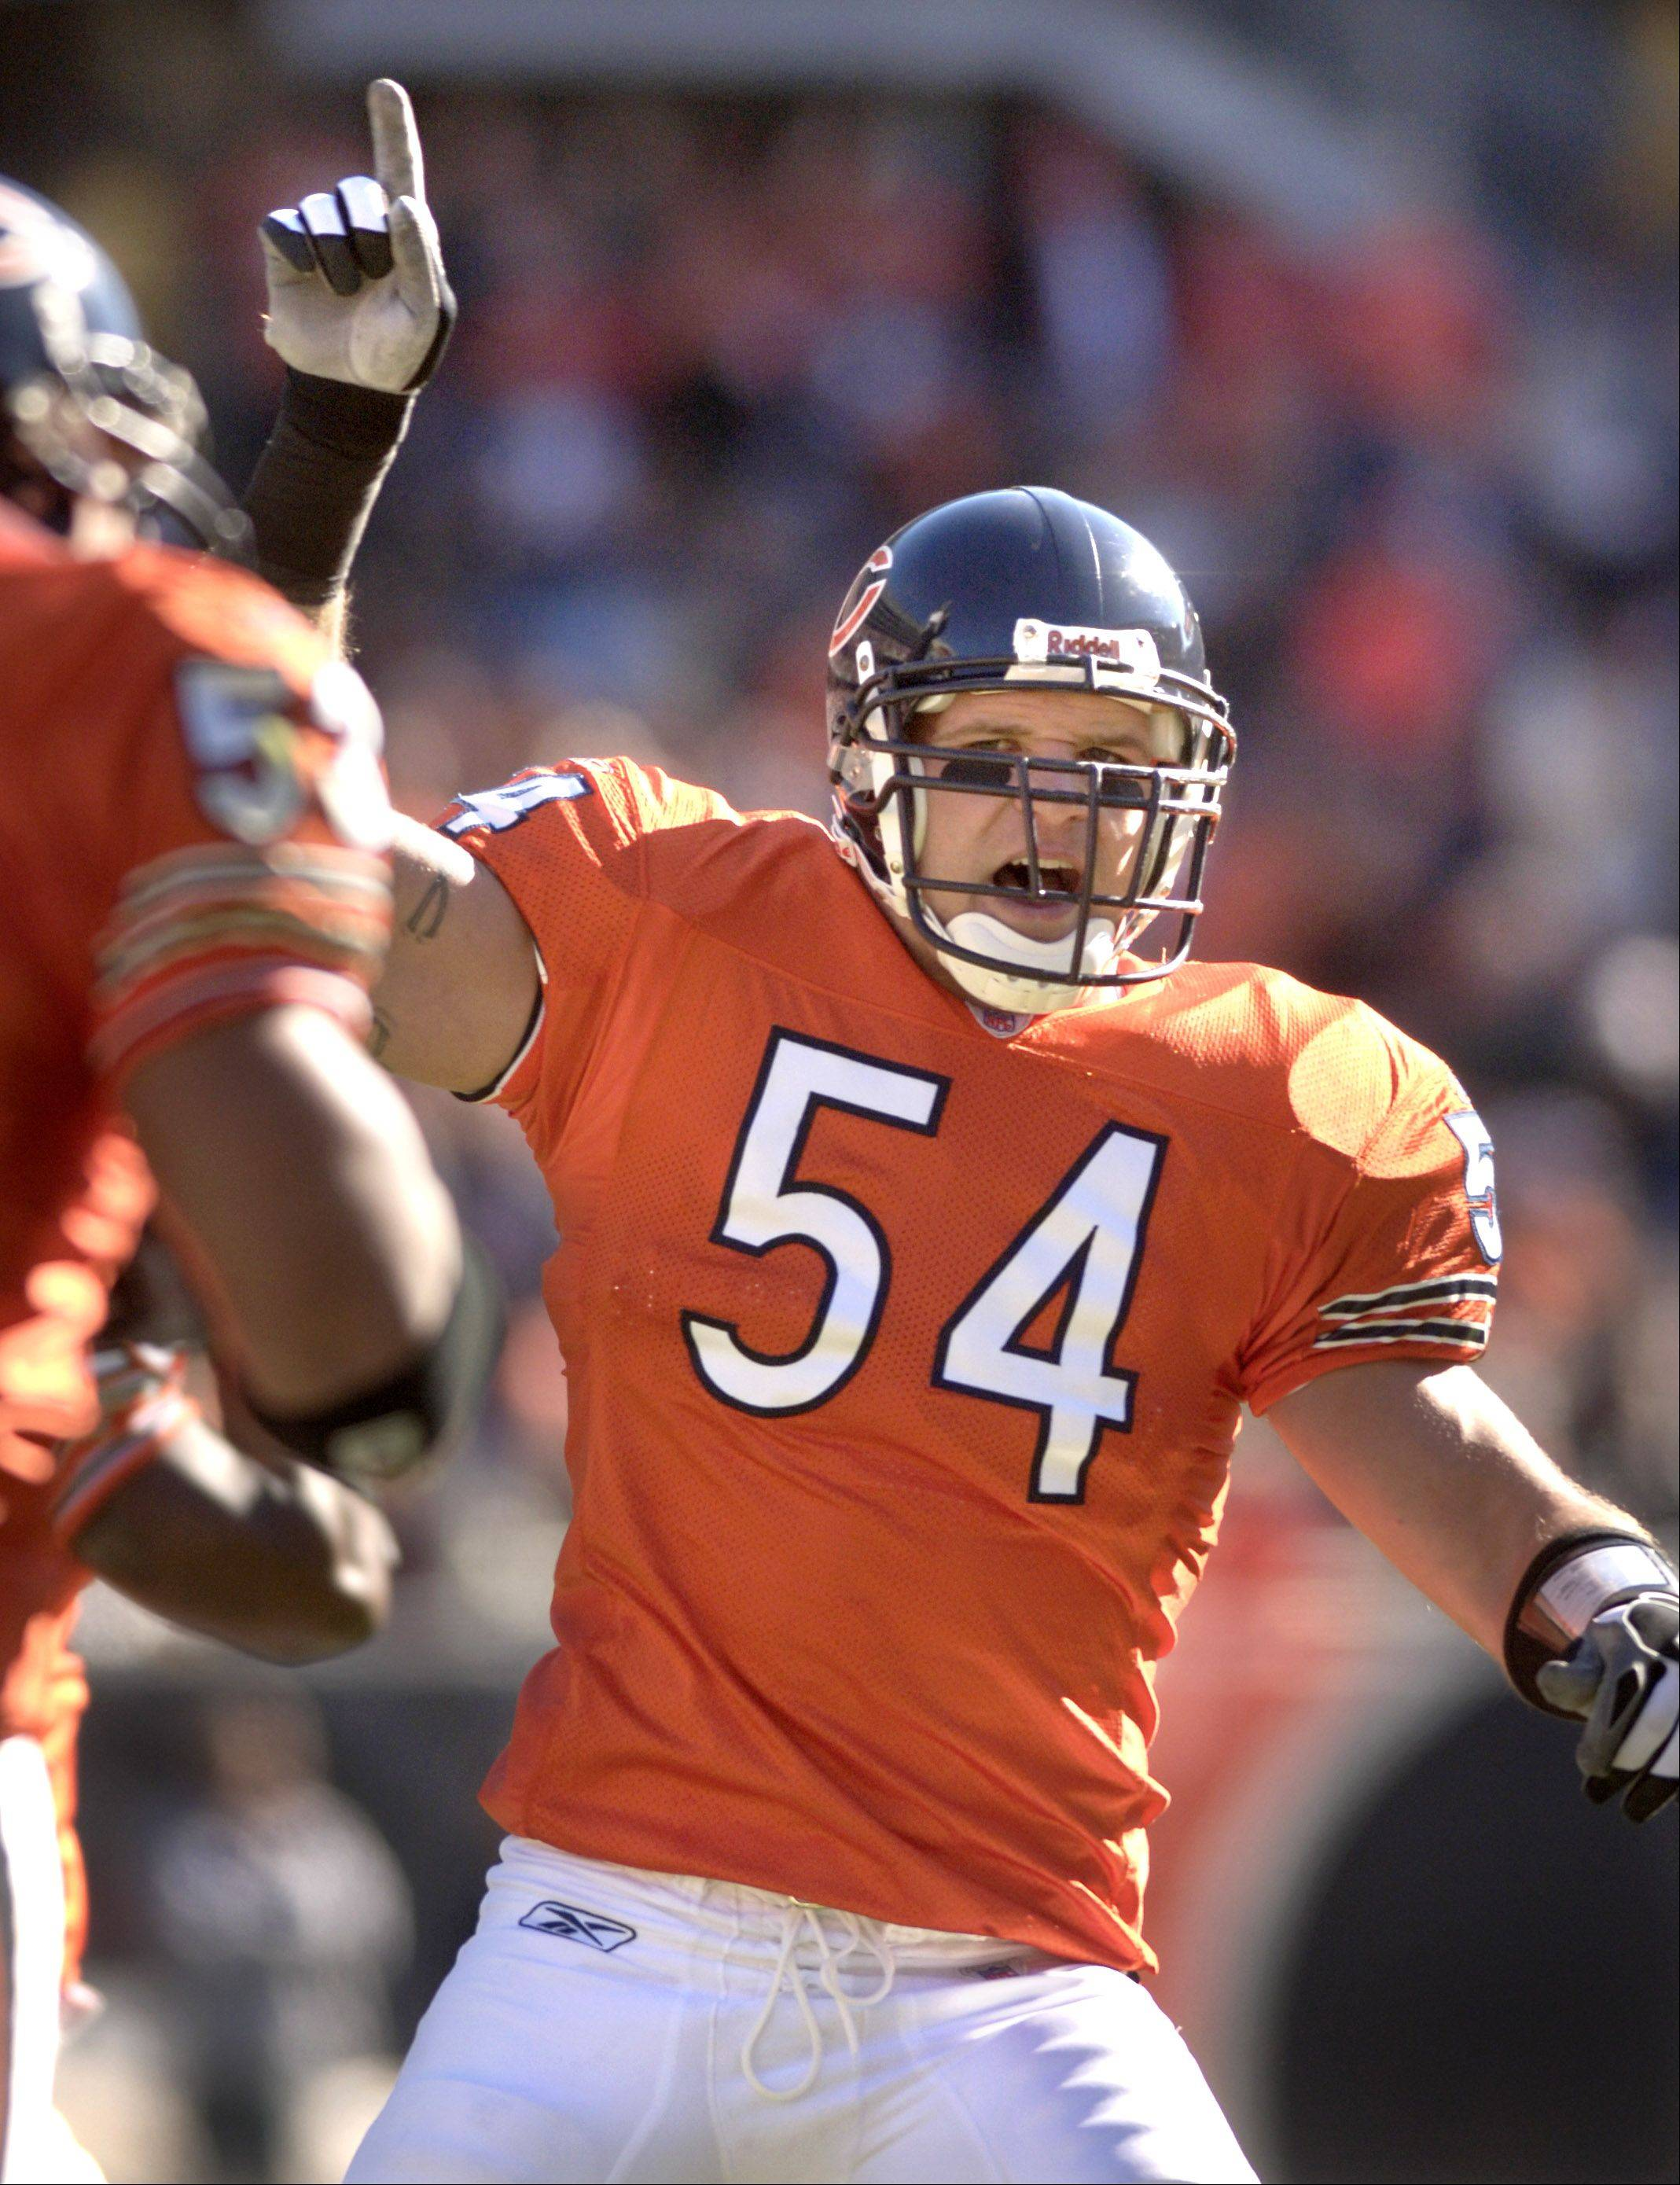 Brian Urlacher celebrates after a fumble recovery.